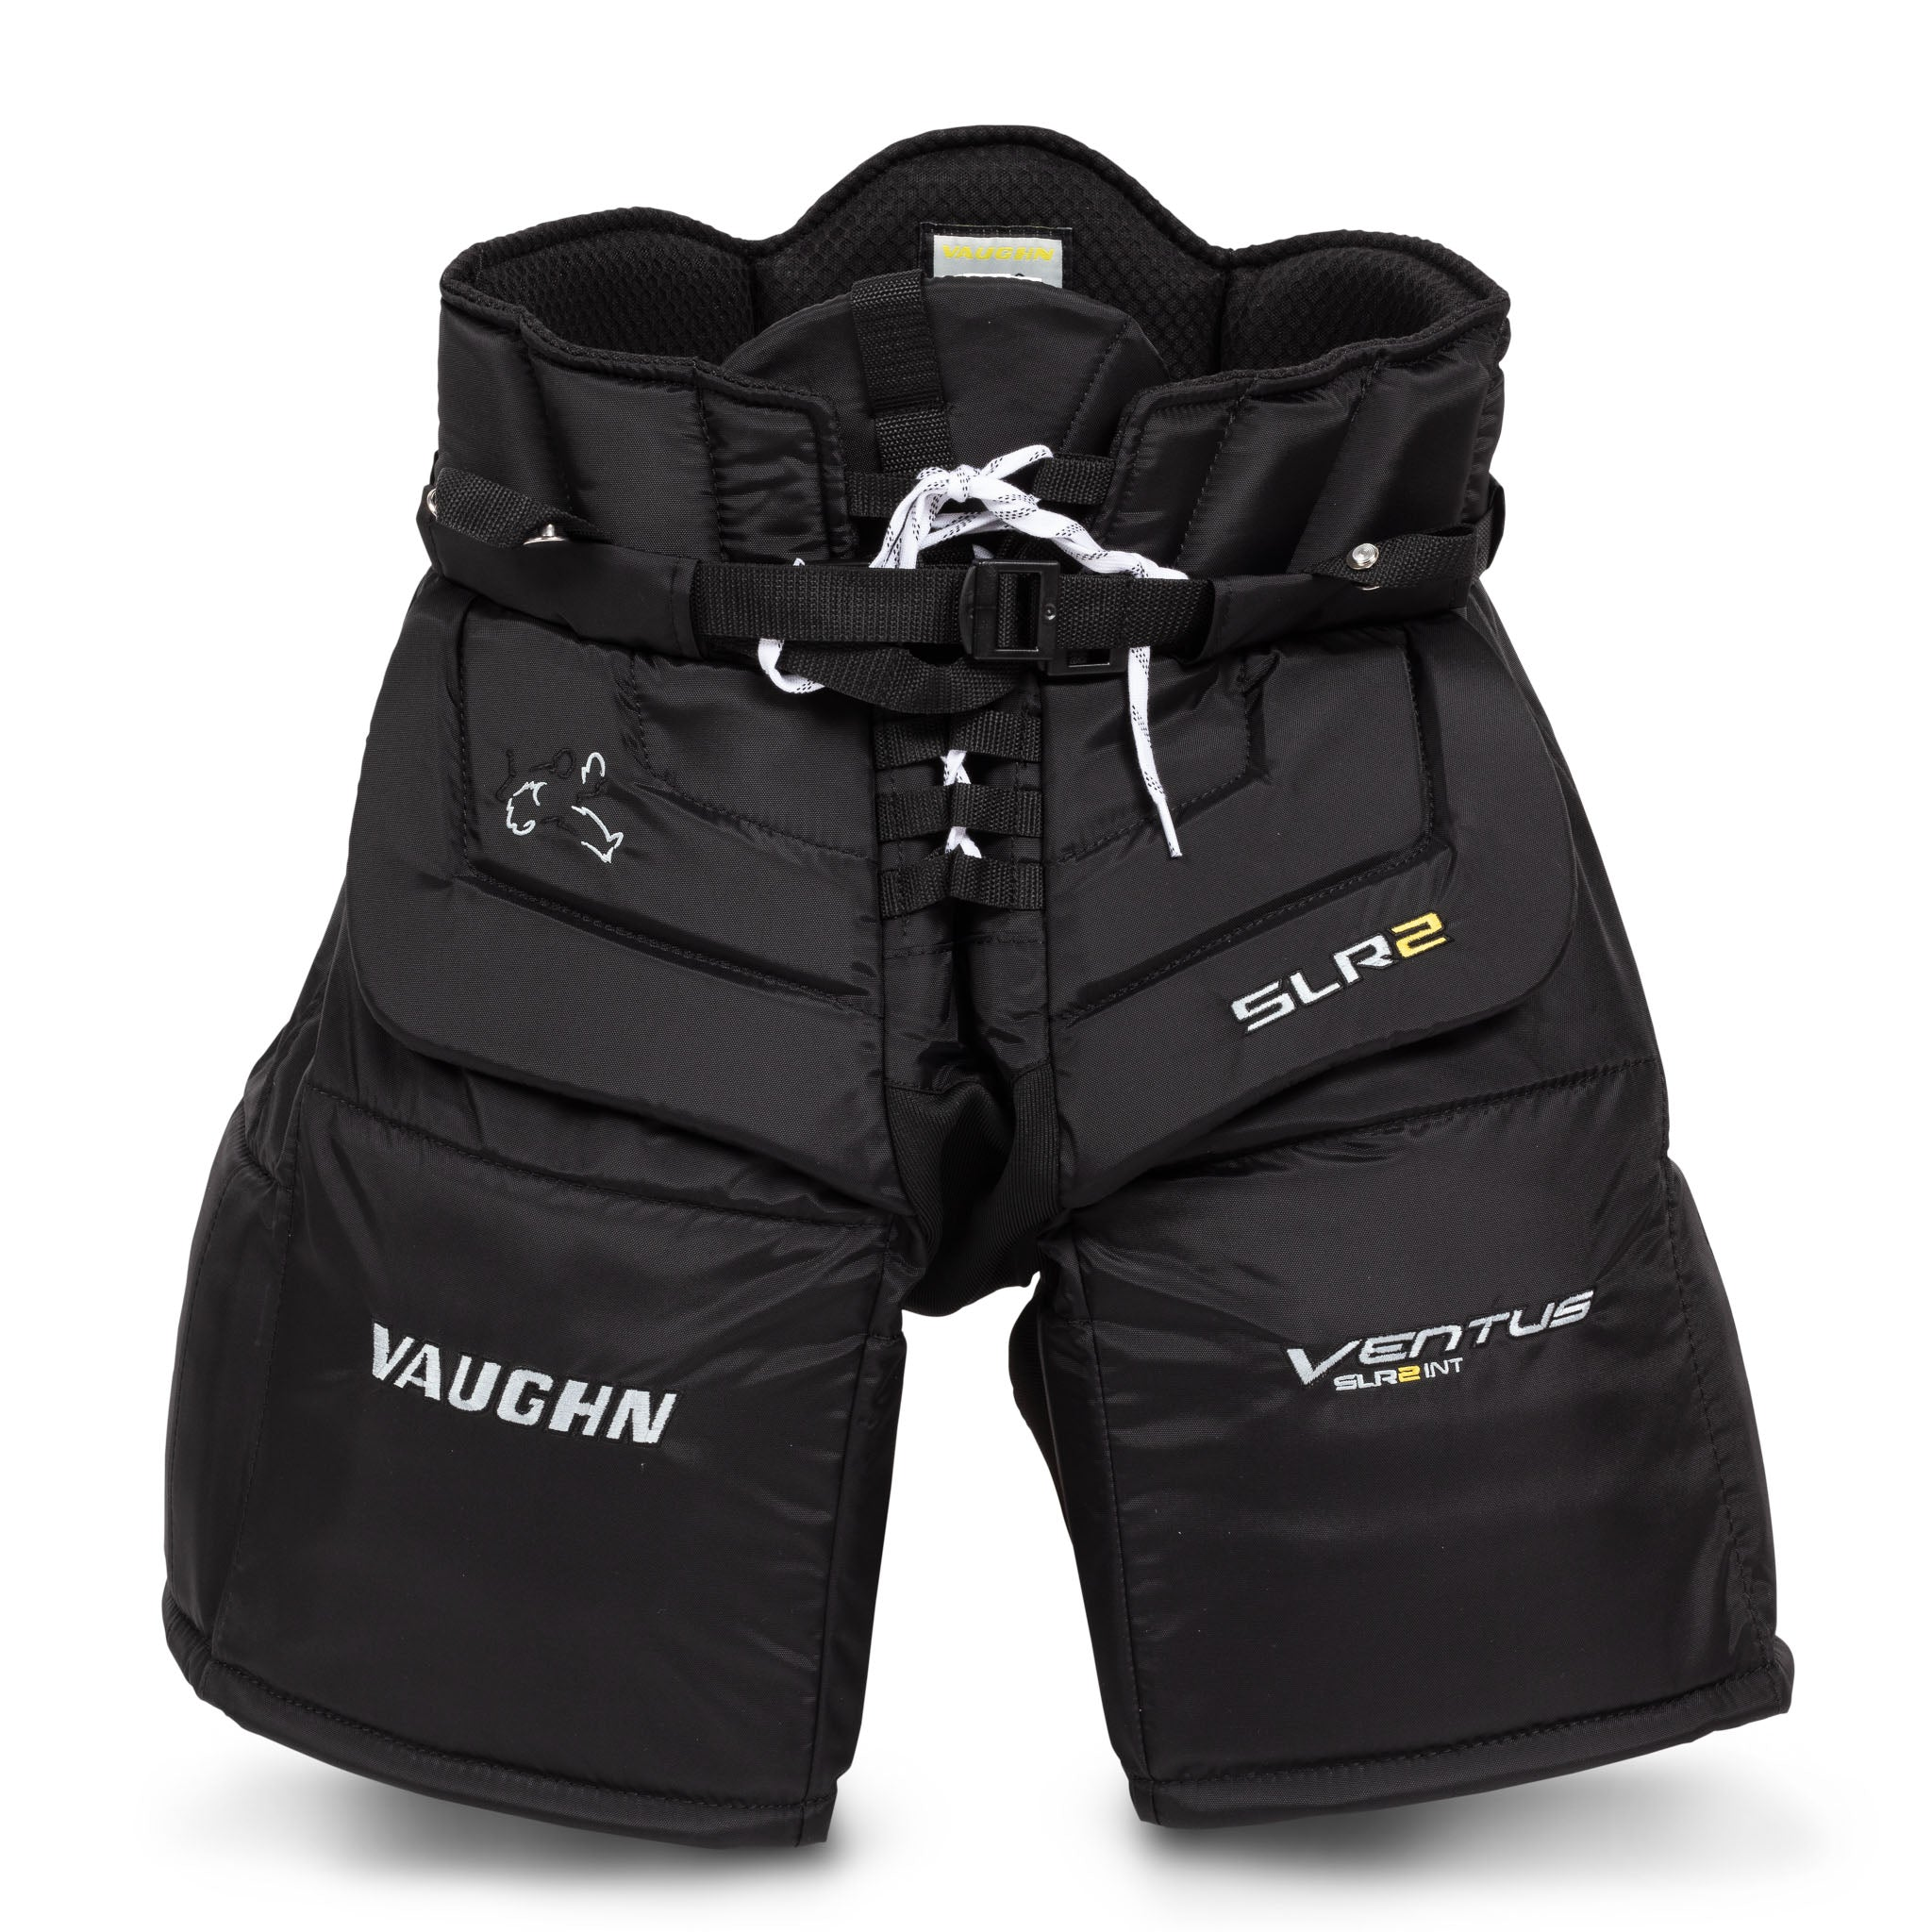 Vaughn Ventus SLR2 Intermediate Goalie Pants